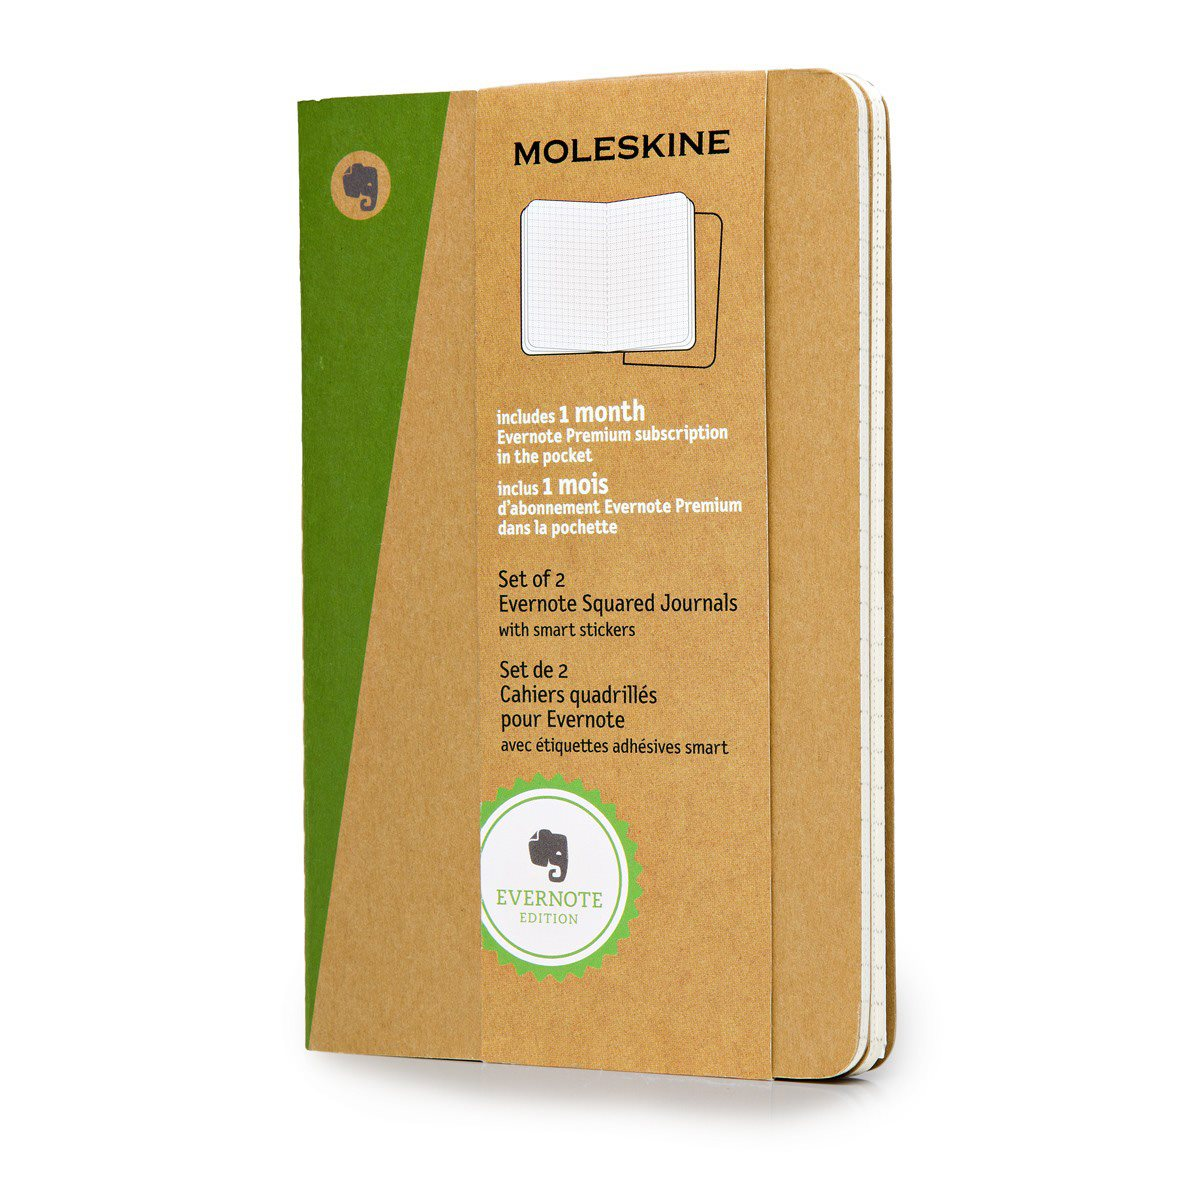 Moleskine Evernote Squared Notebook XL met Smart Stickers